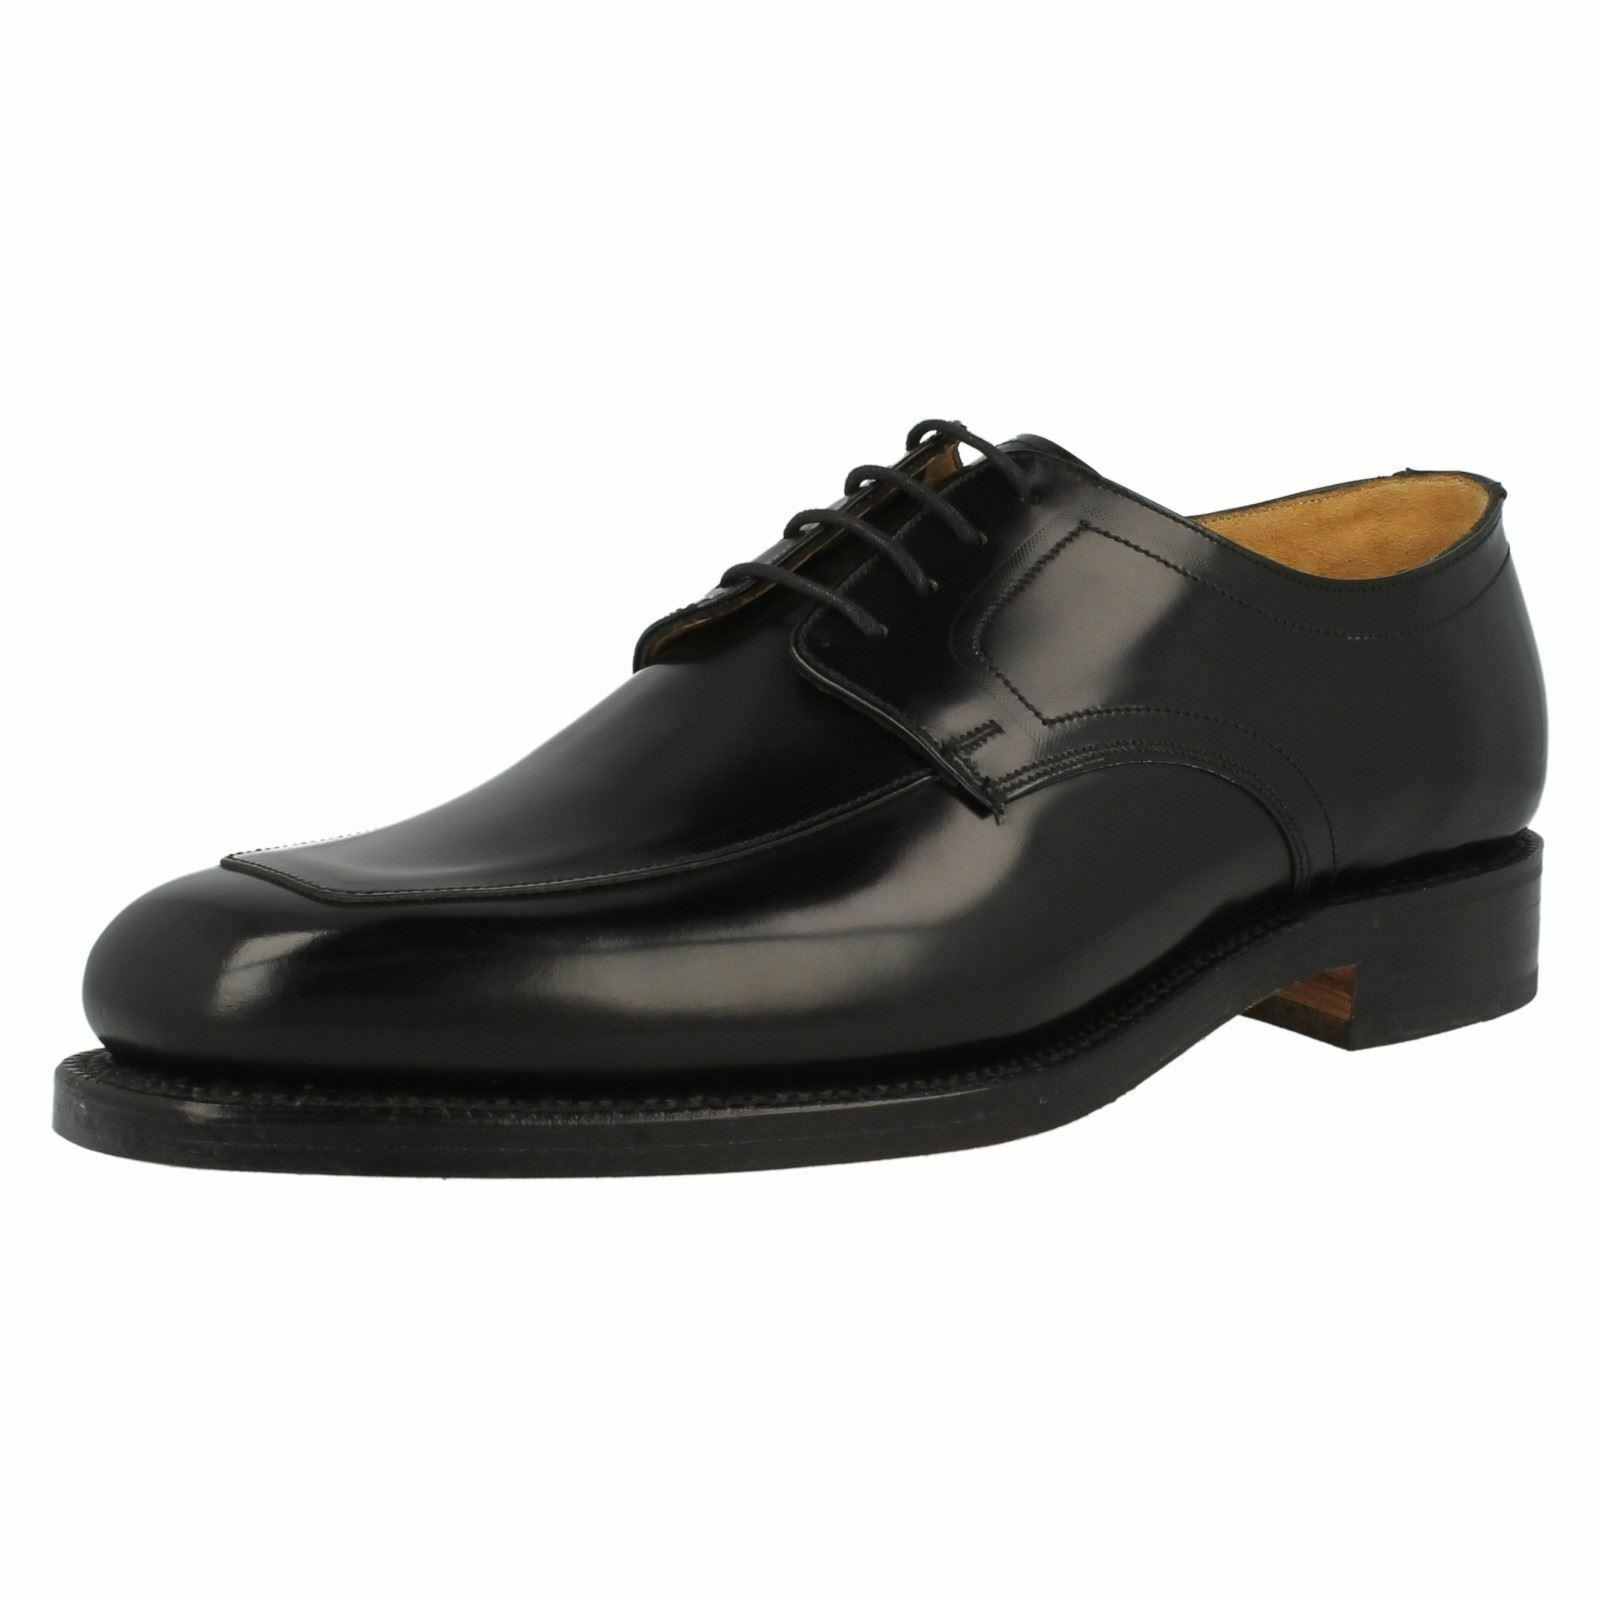 Mens Grensons Black Leather Formal Lace Up Shoes G Fitting Stirling